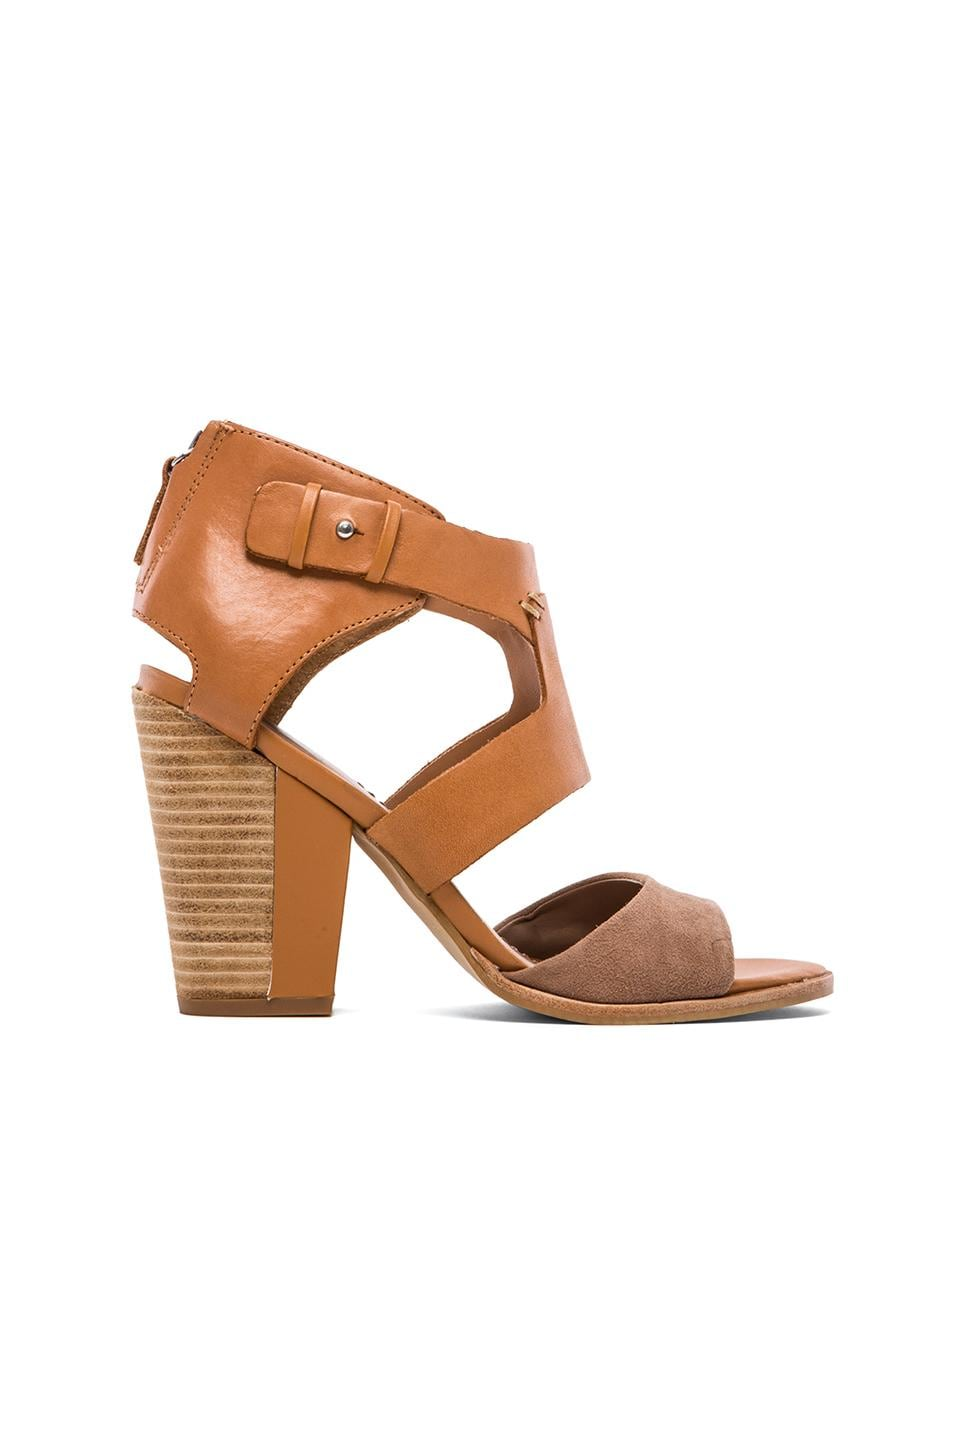 Dolce Vita Parissa Sandal in Taupe & Honey